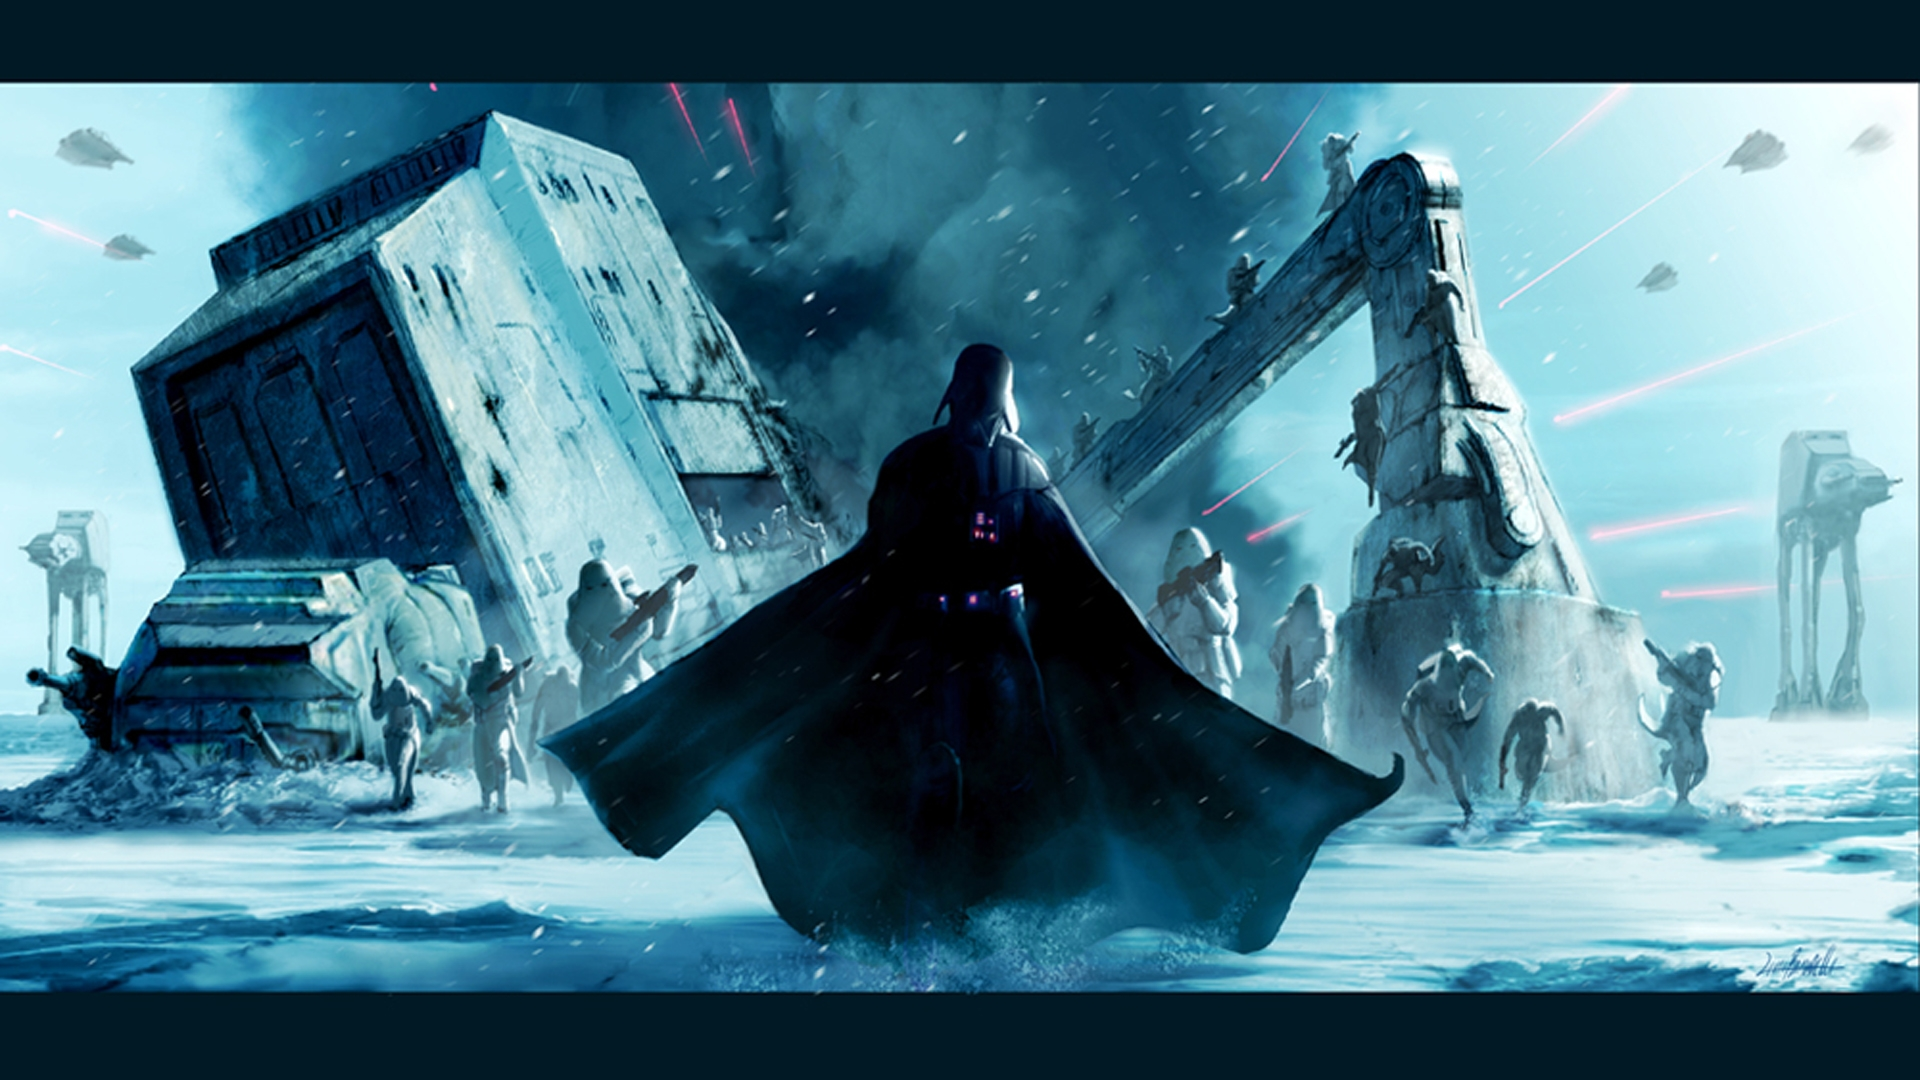 Darth Vader wallpaper   765350 1920x1080